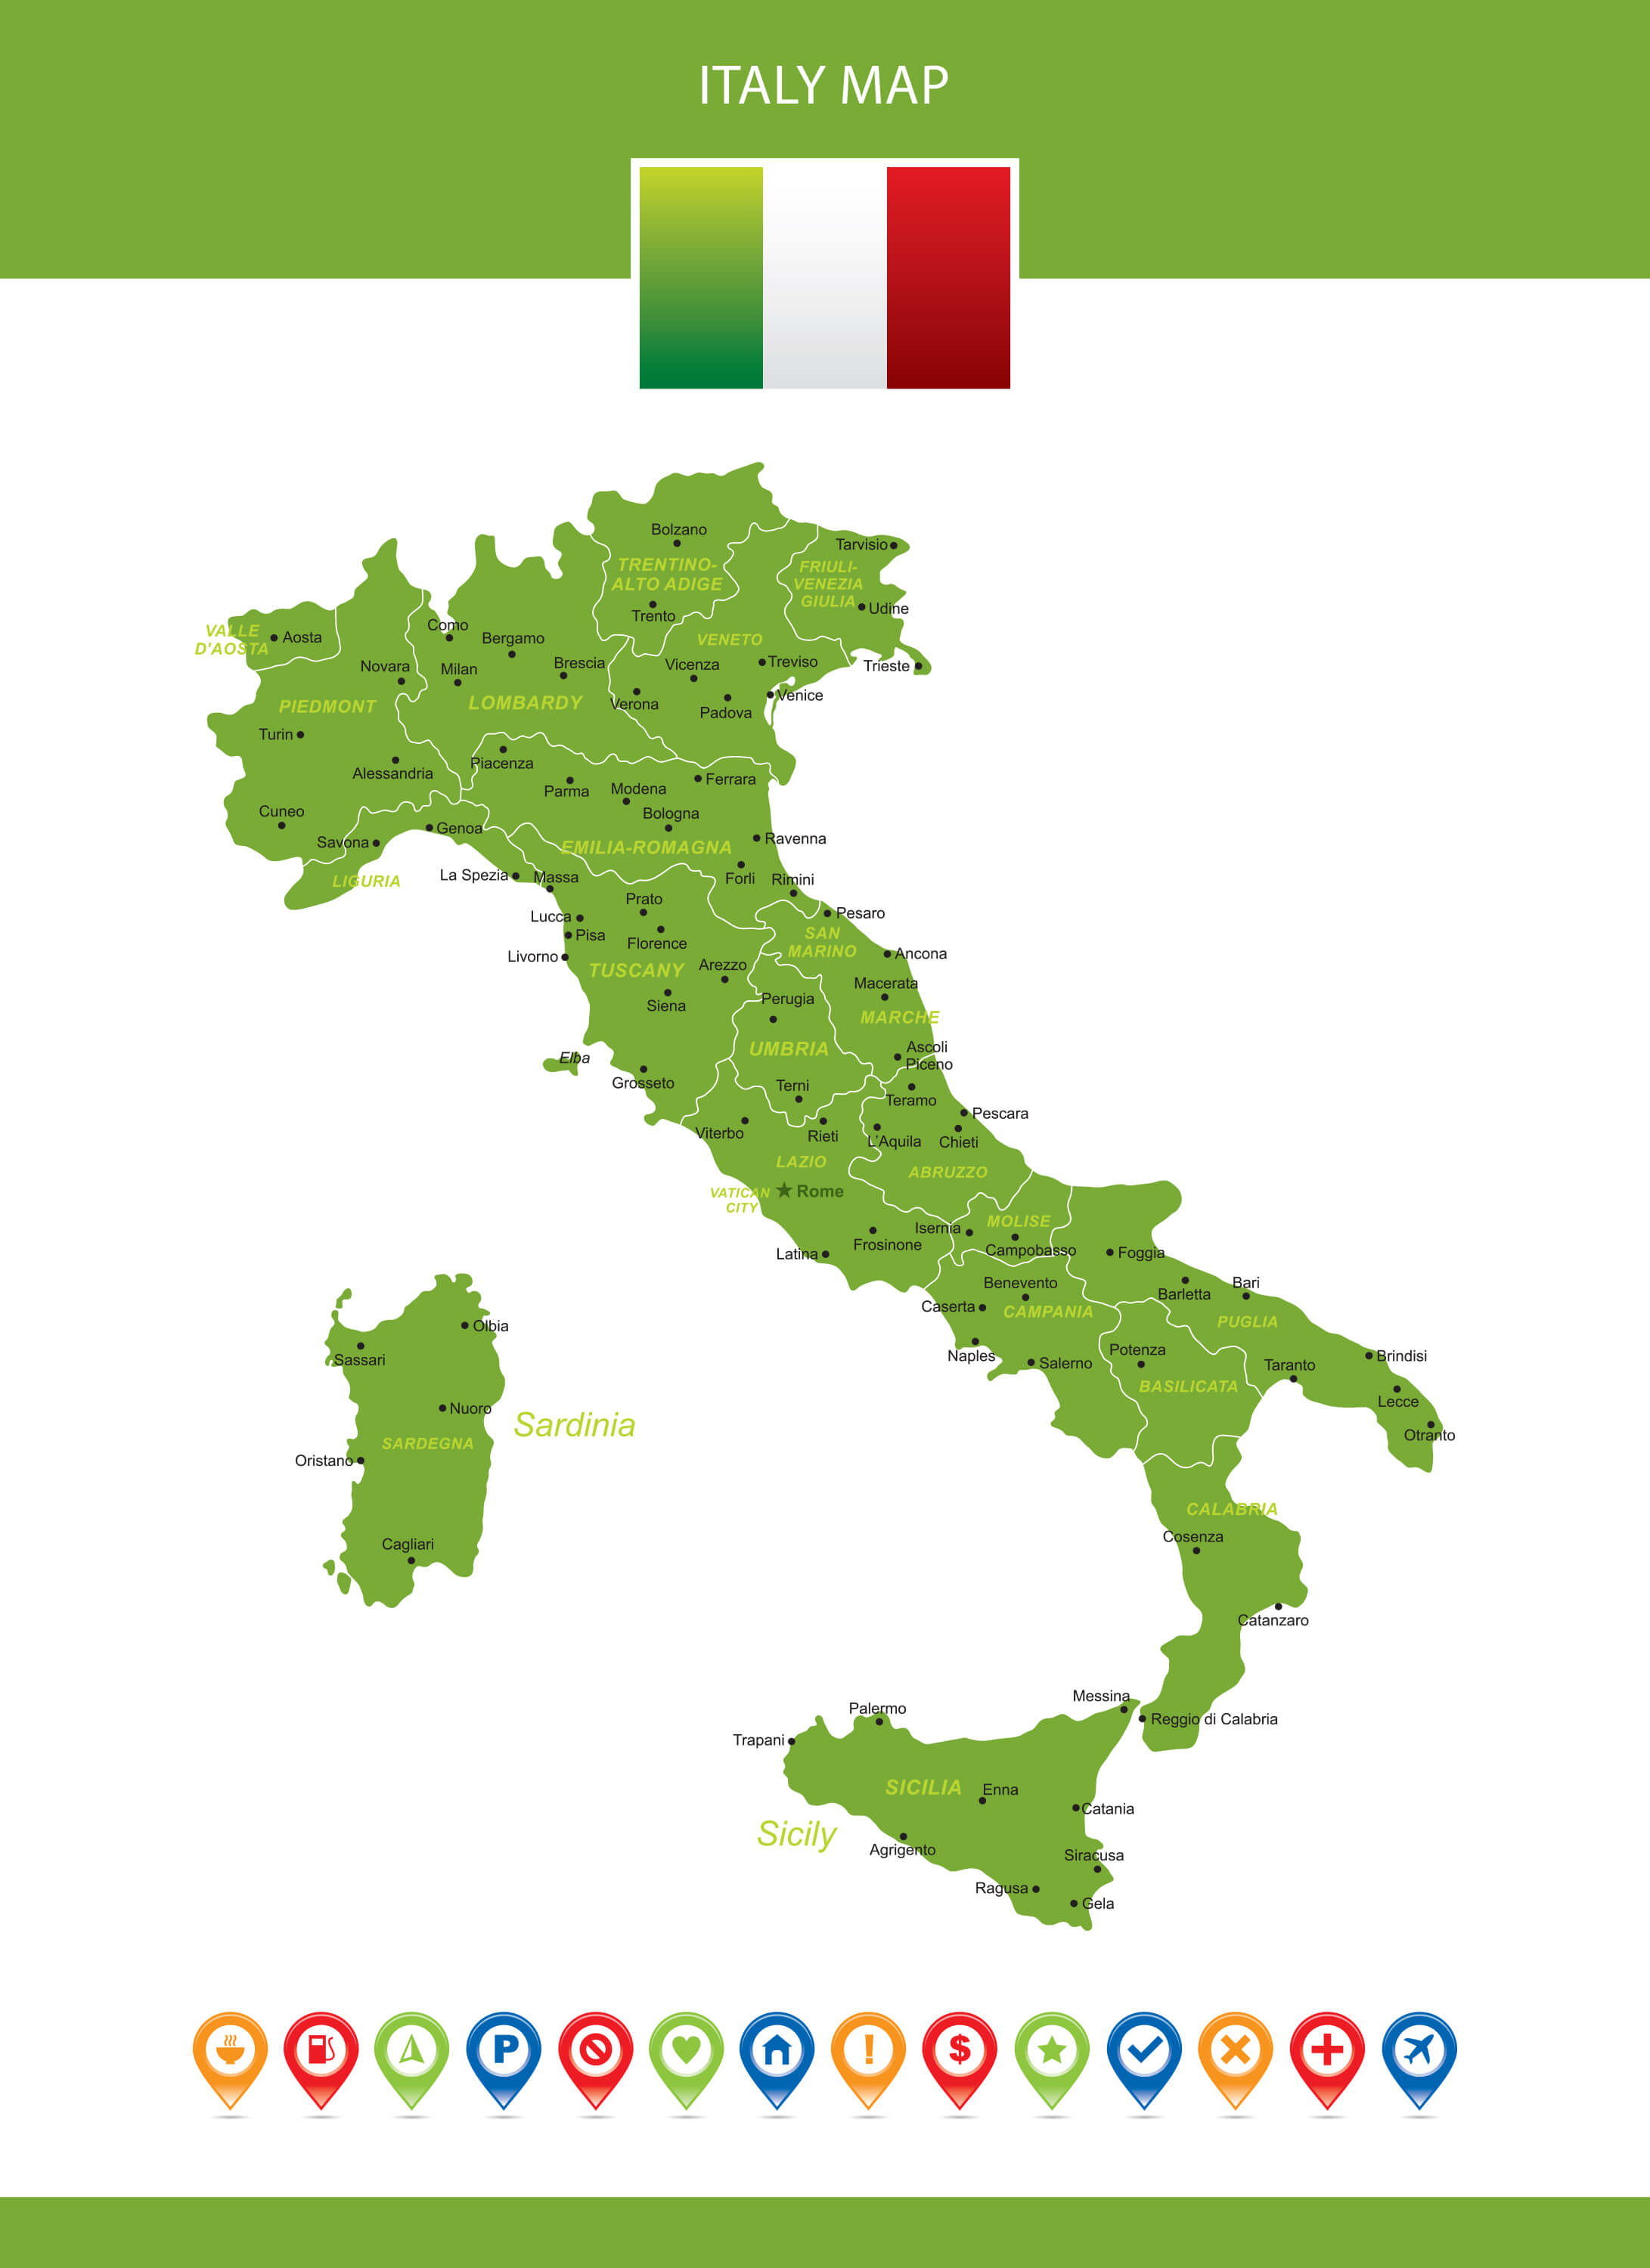 Italy Map with Major Cities